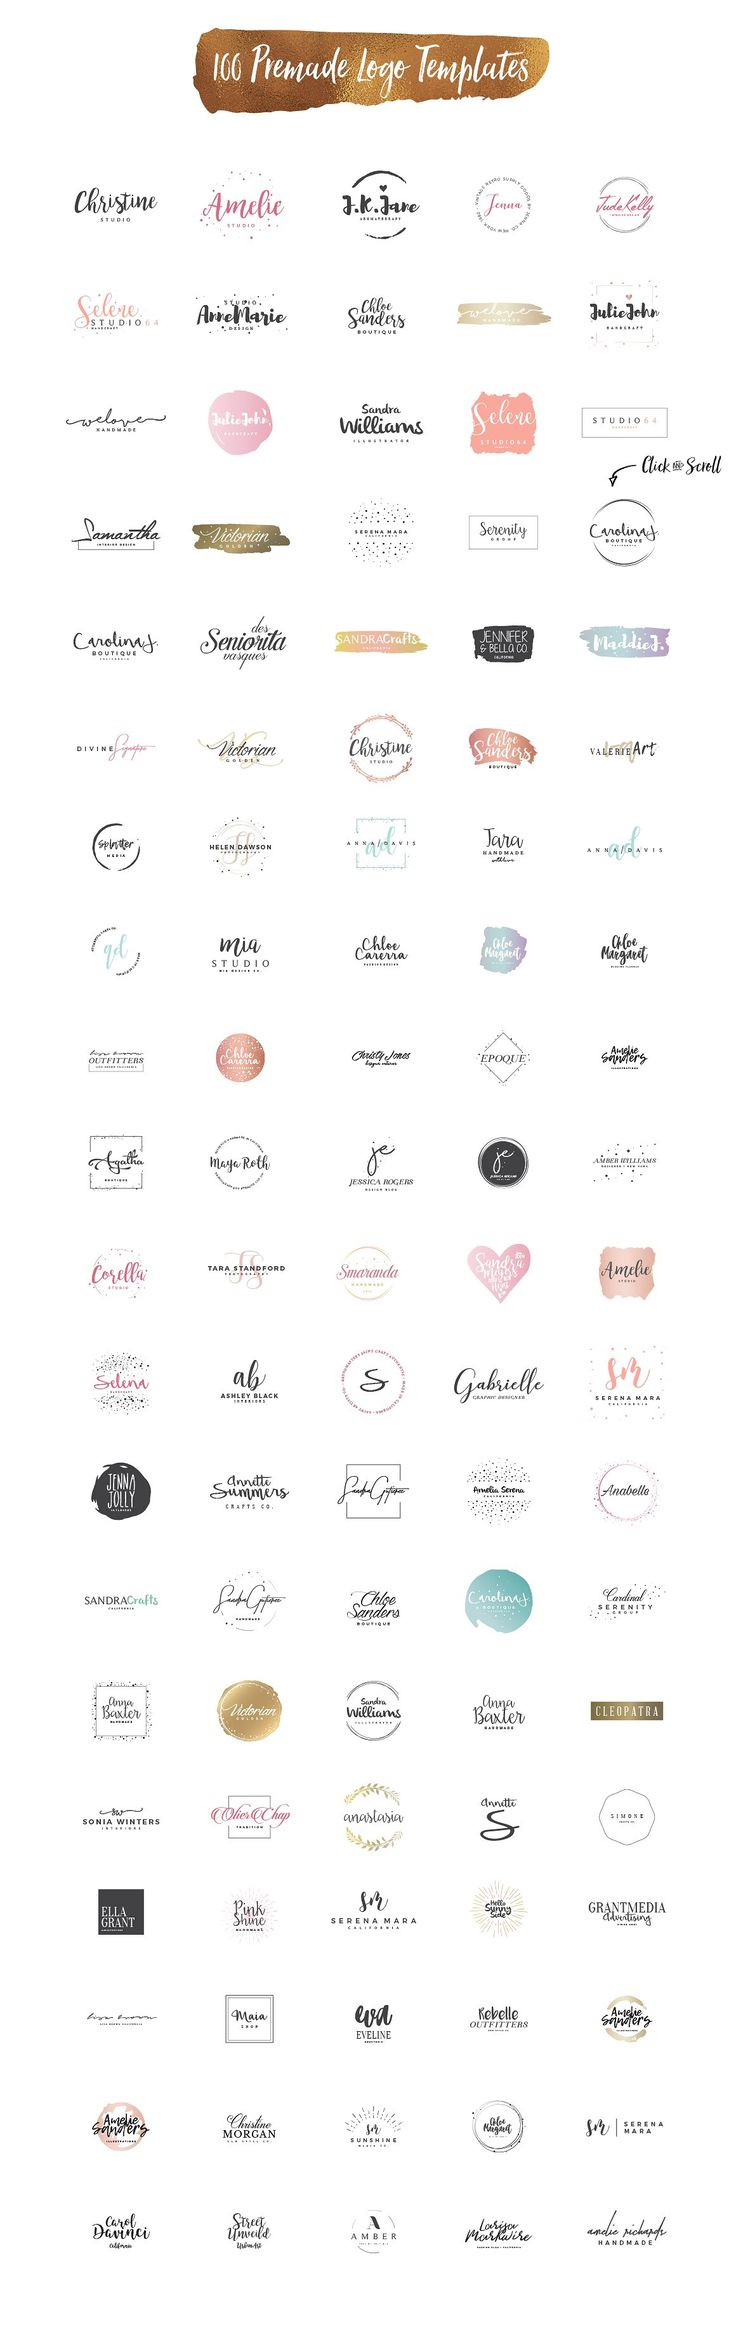 Logo Creation Kit Bundle Edition by Zeppelin Graphics on @creativemarket #ad